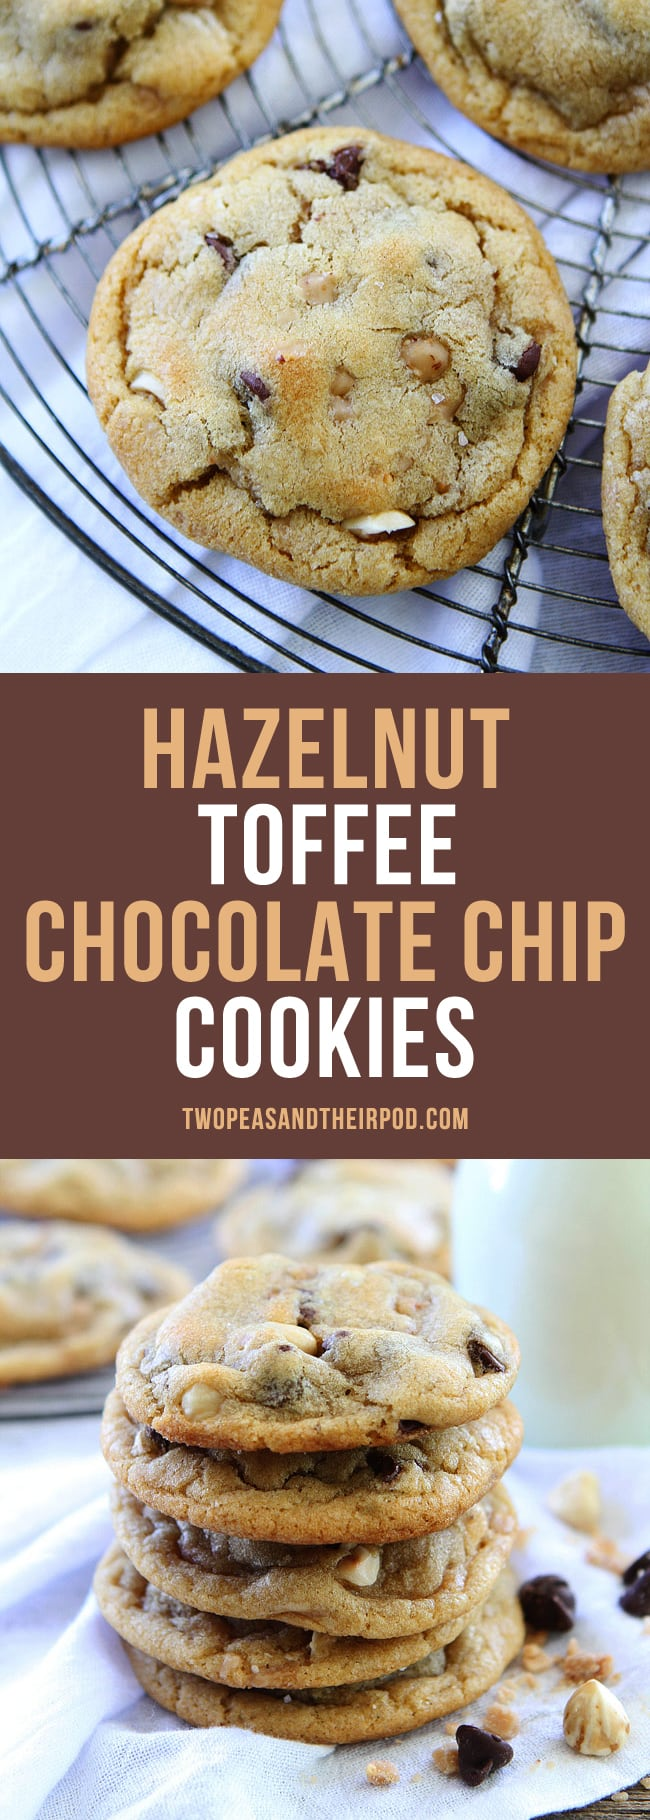 Hazelnut Toffee Chocolate Chip Cookies-perfect chocolate chip cookies with hazelnuts, toffee, and a sprinkling of sea salt. #cookies #chocolatechip #chocolatechipcookies